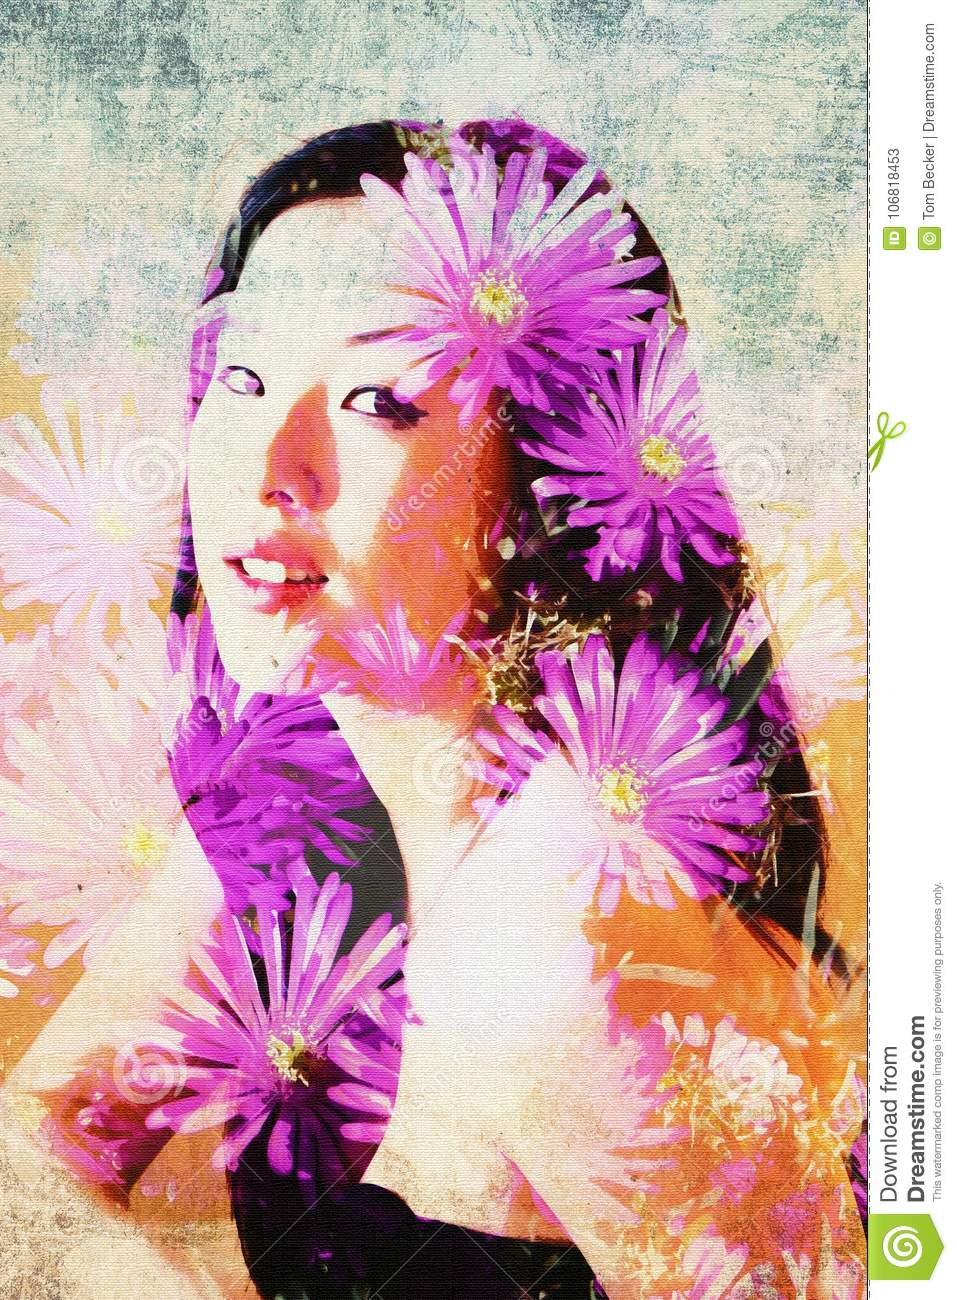 Lovely Asian Model Is Surrounded By Daisy Flowers In This Double